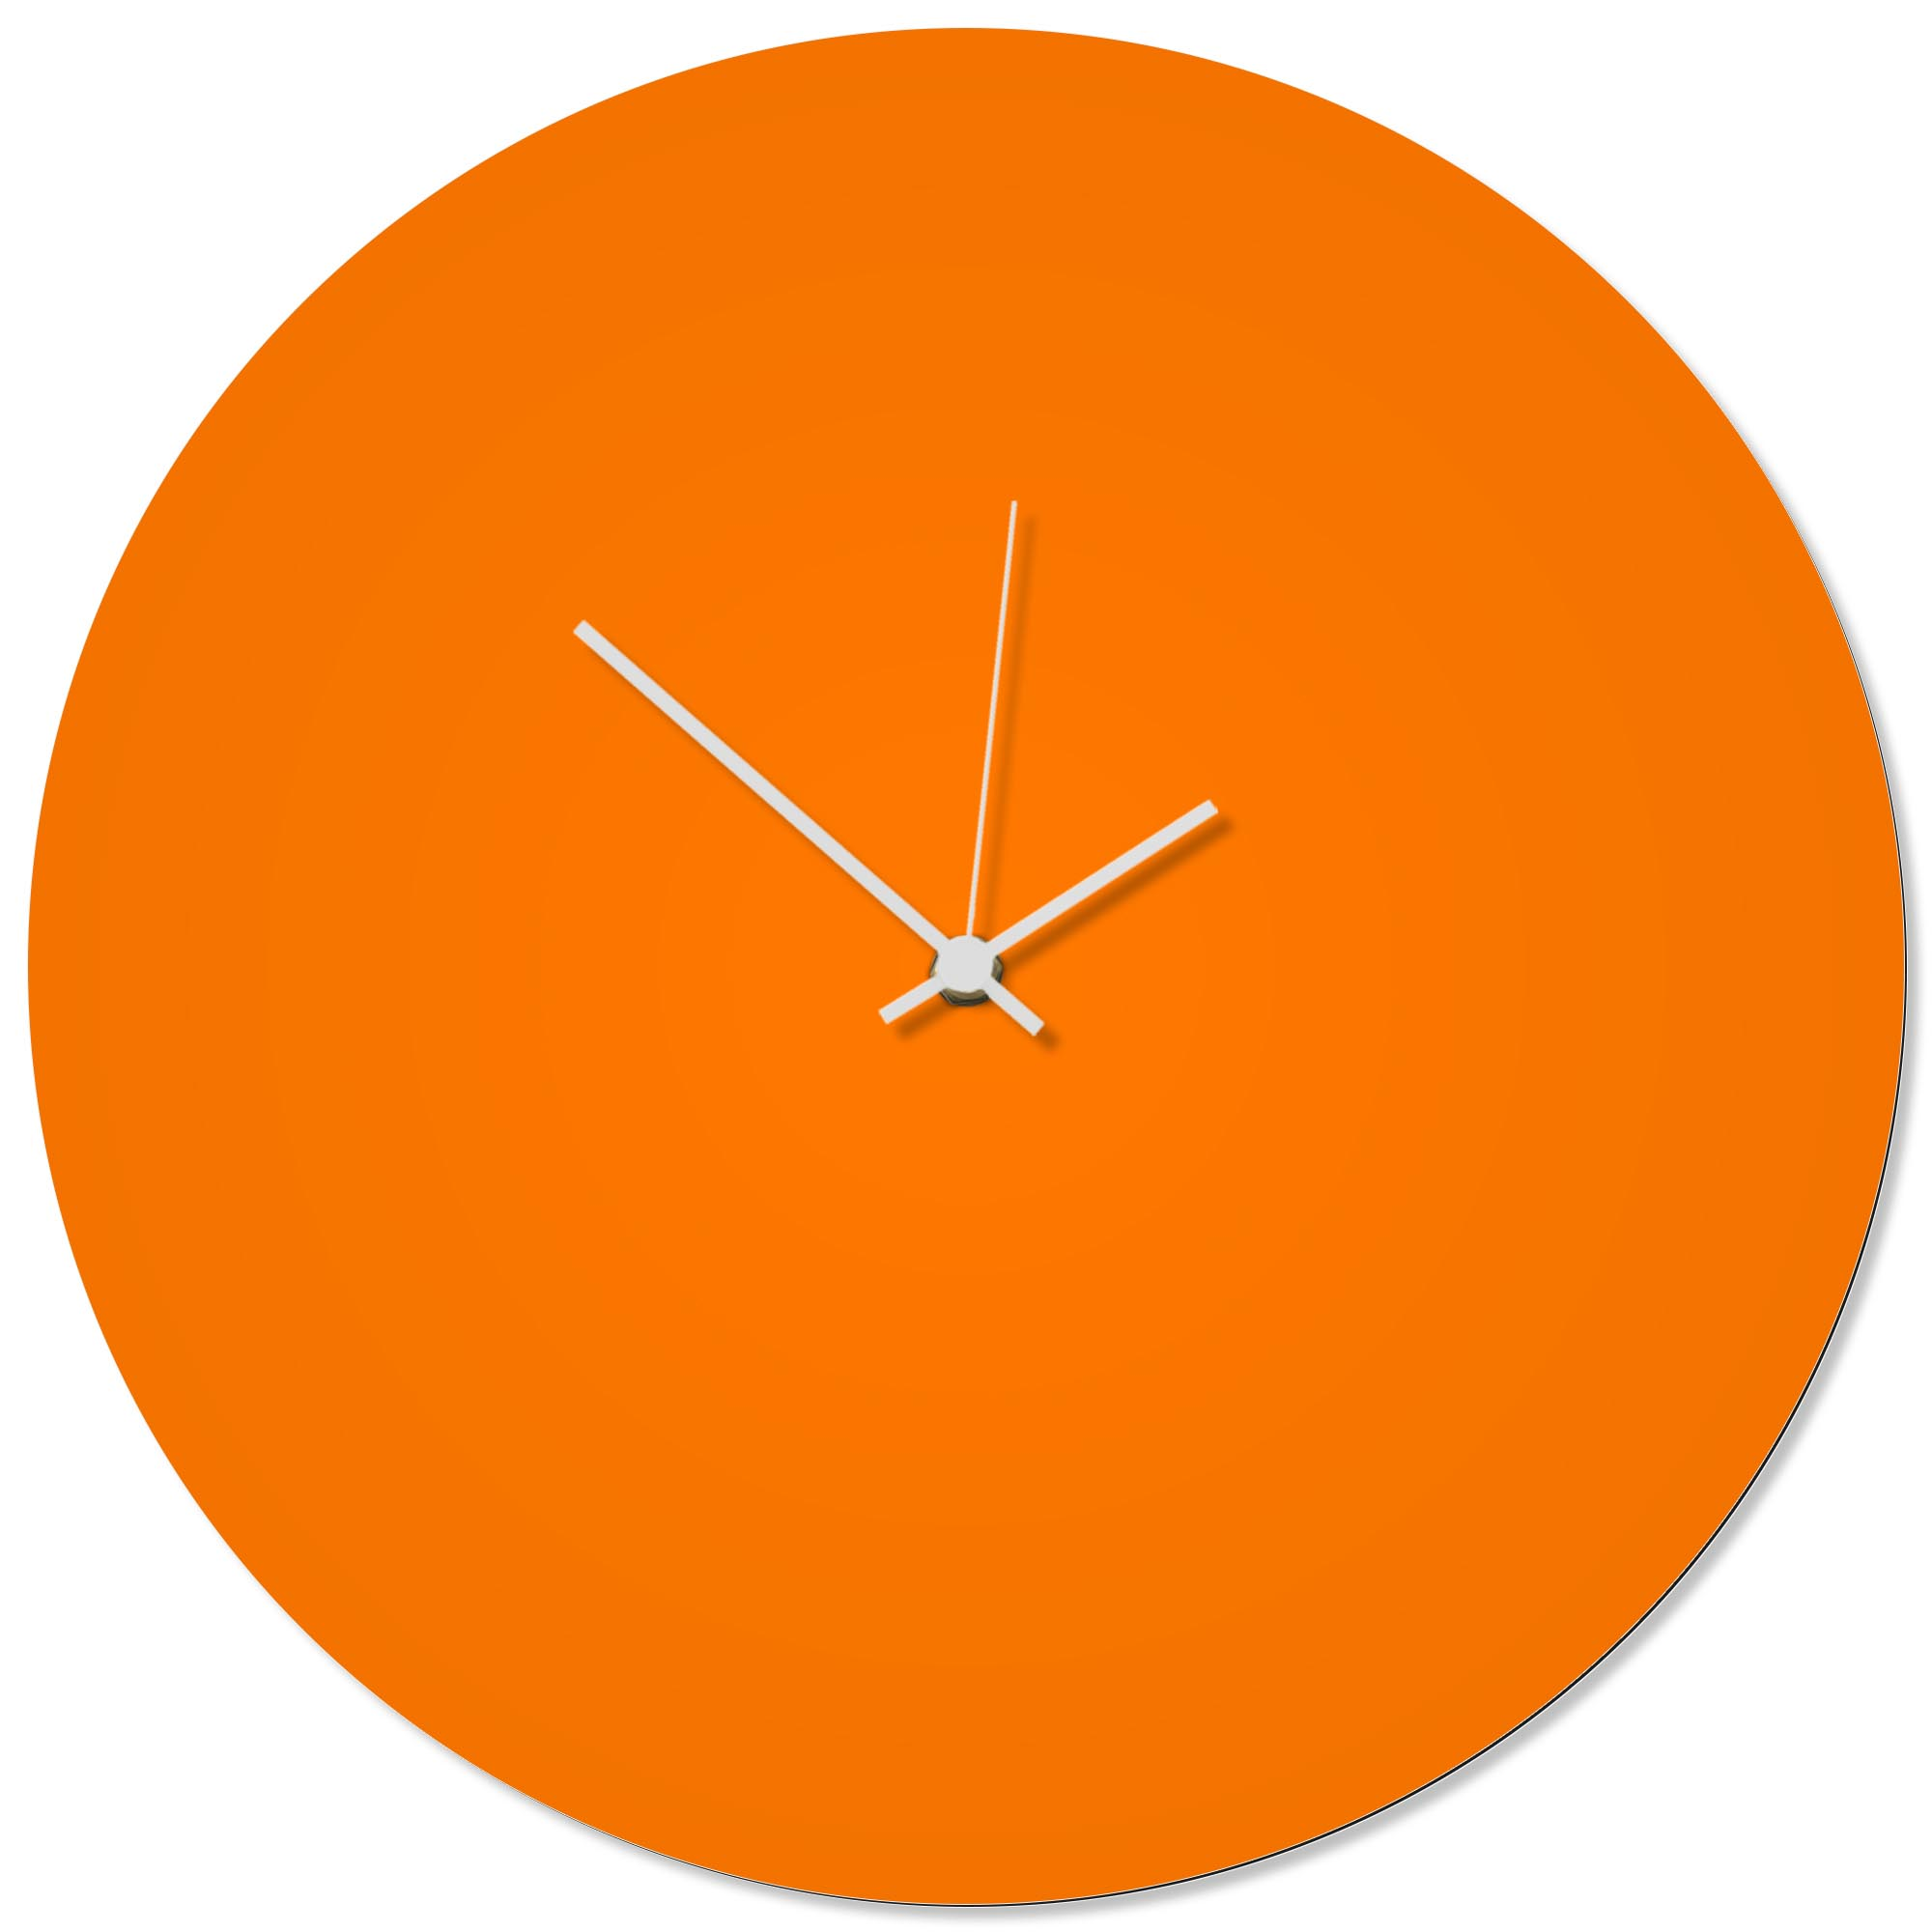 Orangeout White Circle Clock 16x16in. Aluminum Polymetal